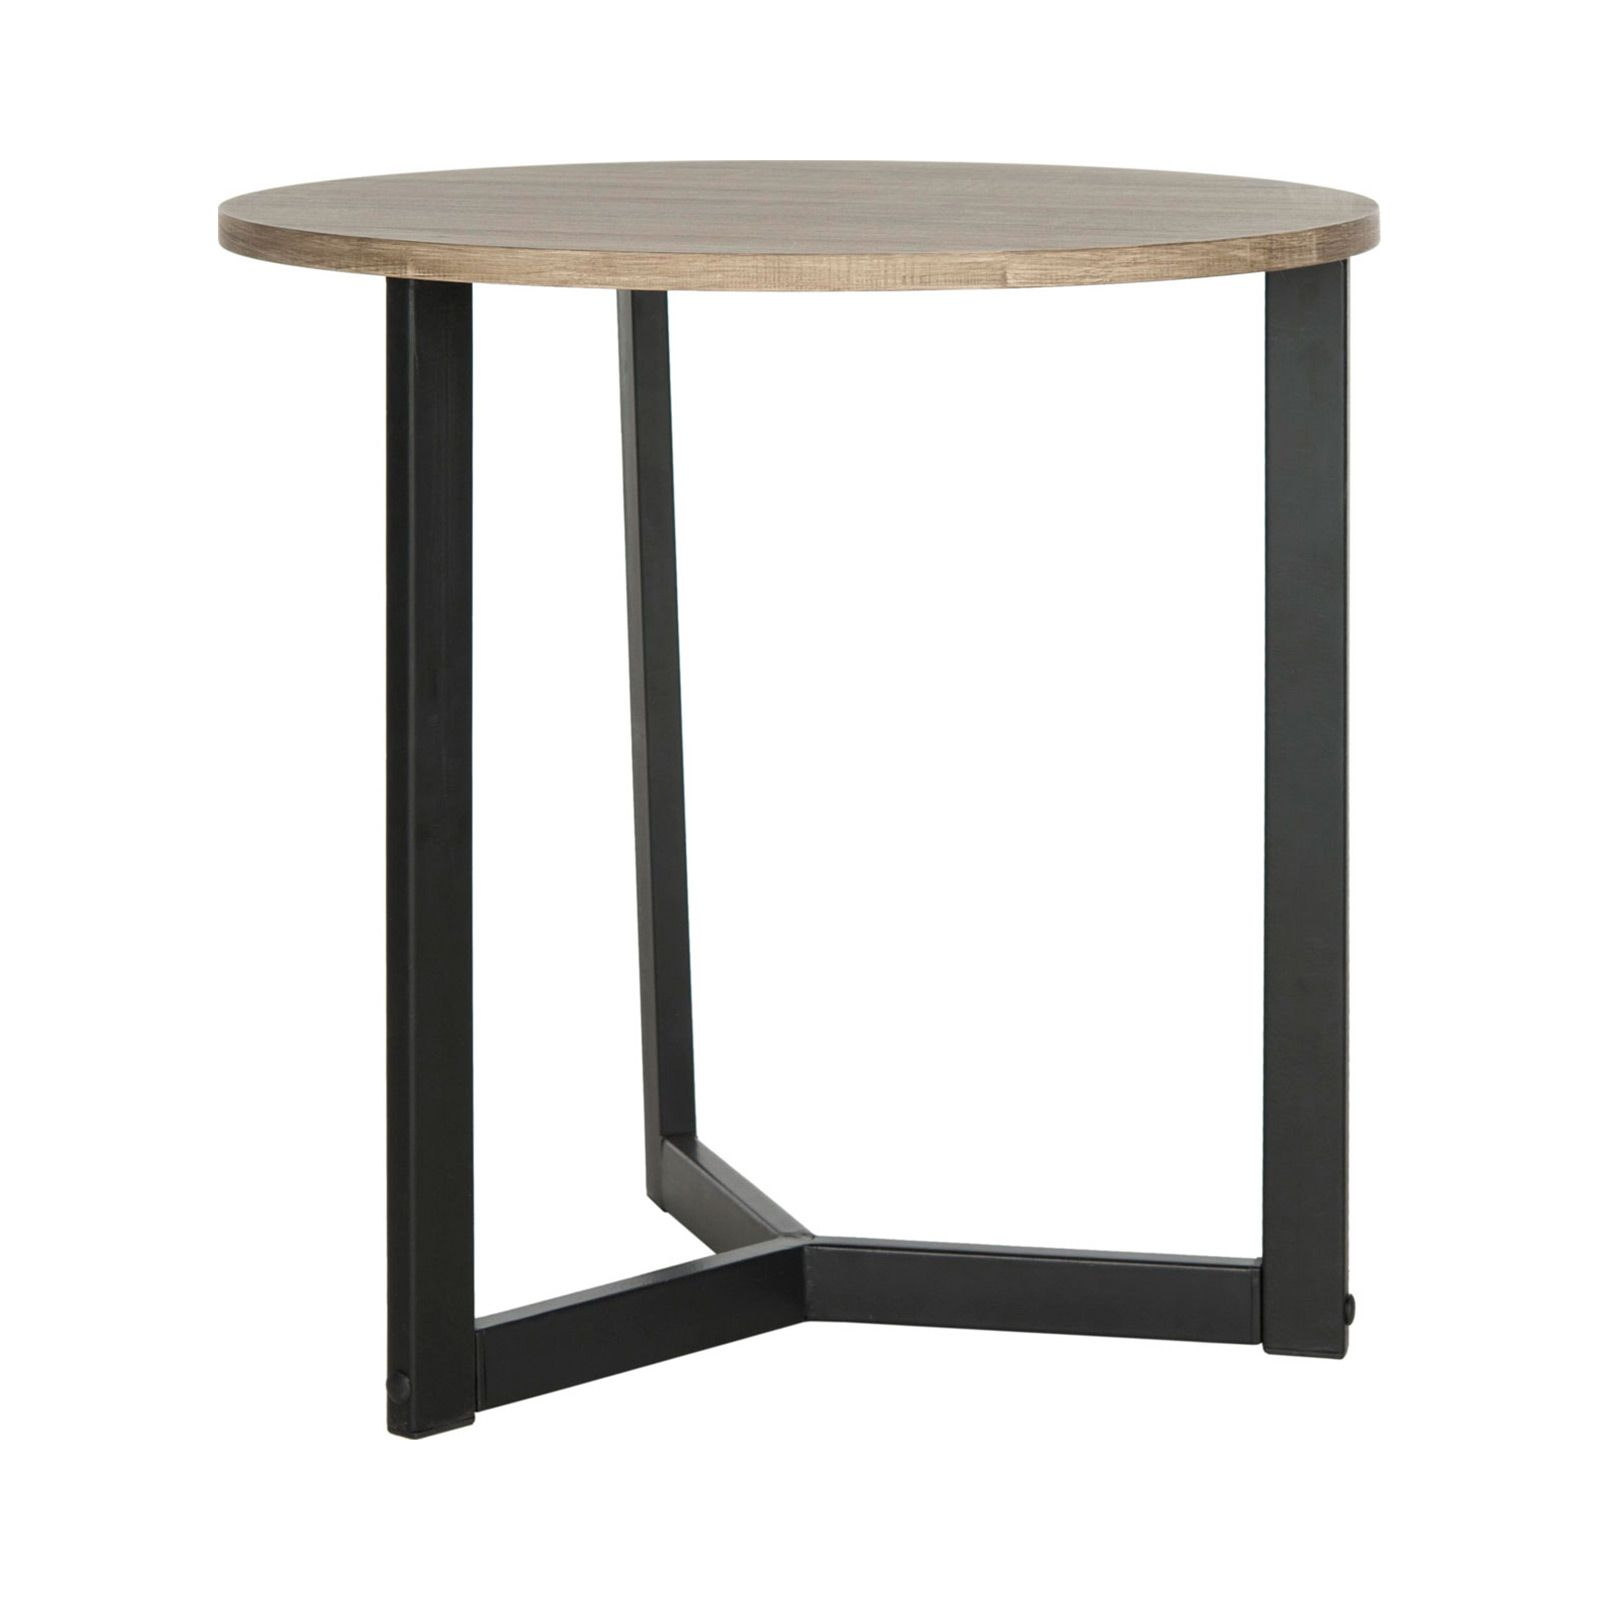 furniture and decor for the modern lifestyle decorating mixed material accent table introduce design concept that makes excellent use materials navy blue console ethan allen round